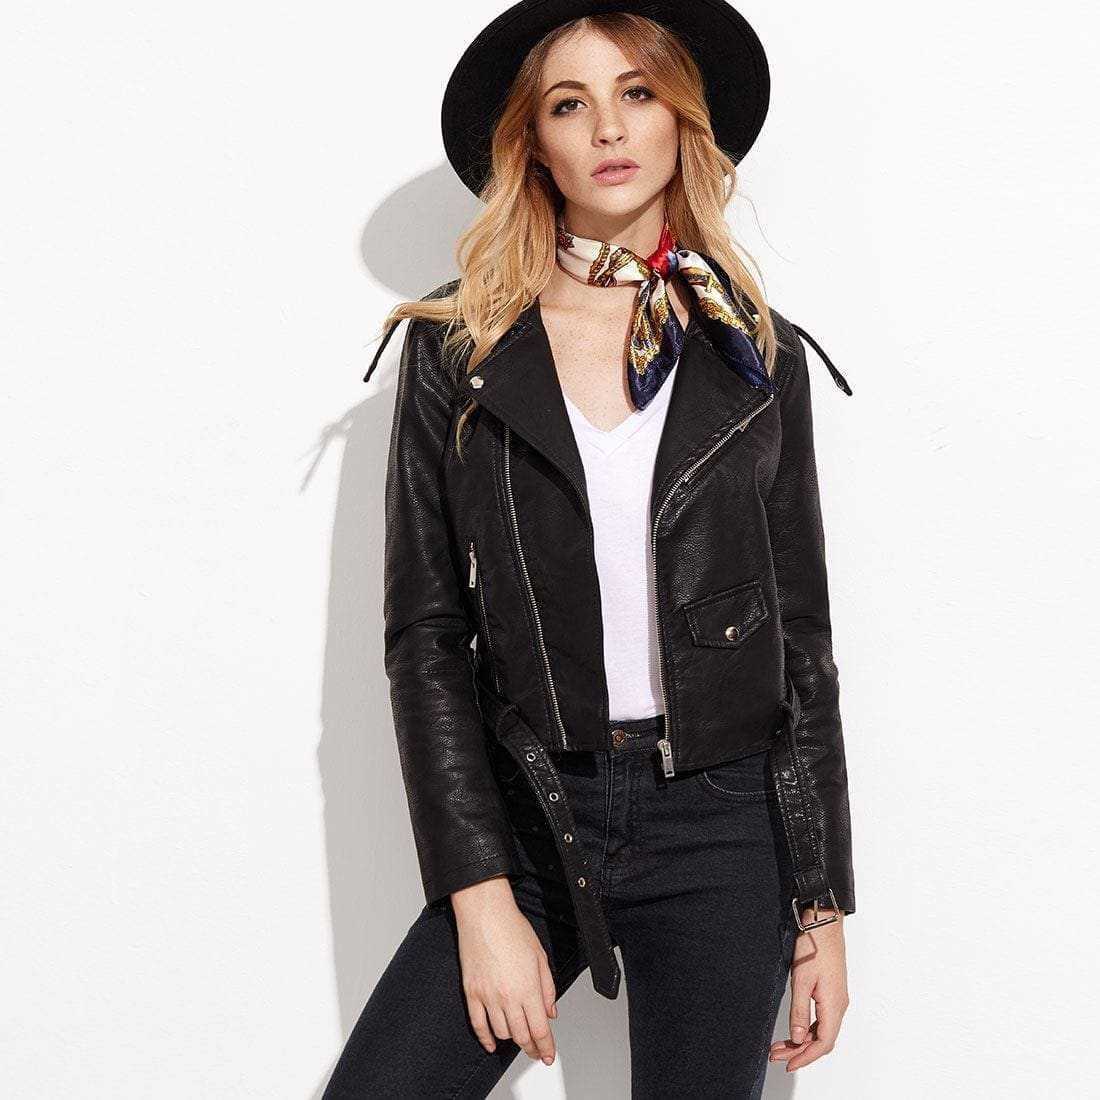 BLack Faux Leather Belted Moto Jacket With Zipper in Black by ROMWE on GOOFASH